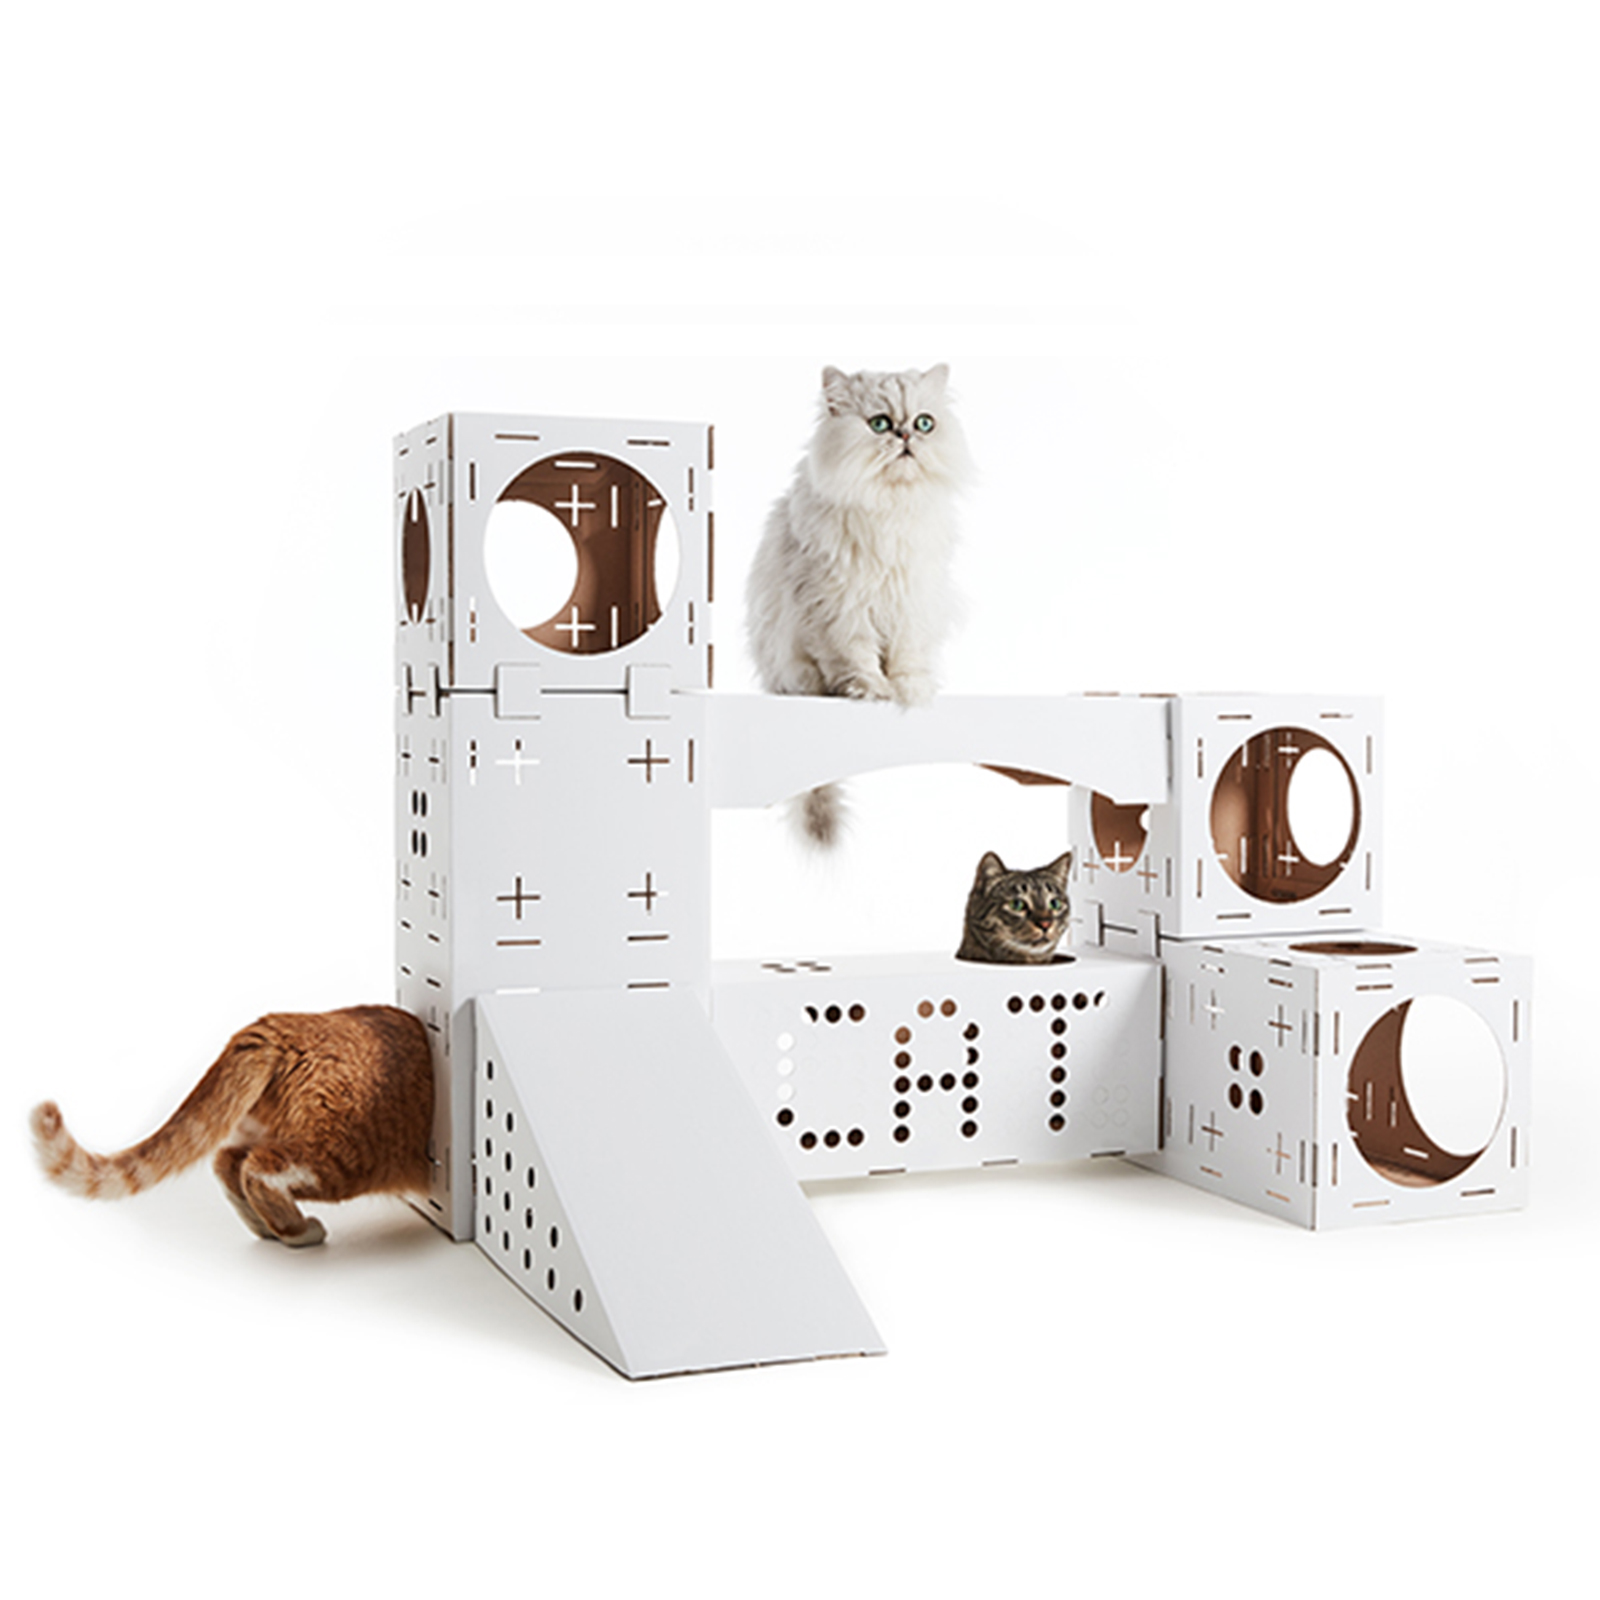 Blocks Cat Play House System Toy By Poopy Cat 71 21